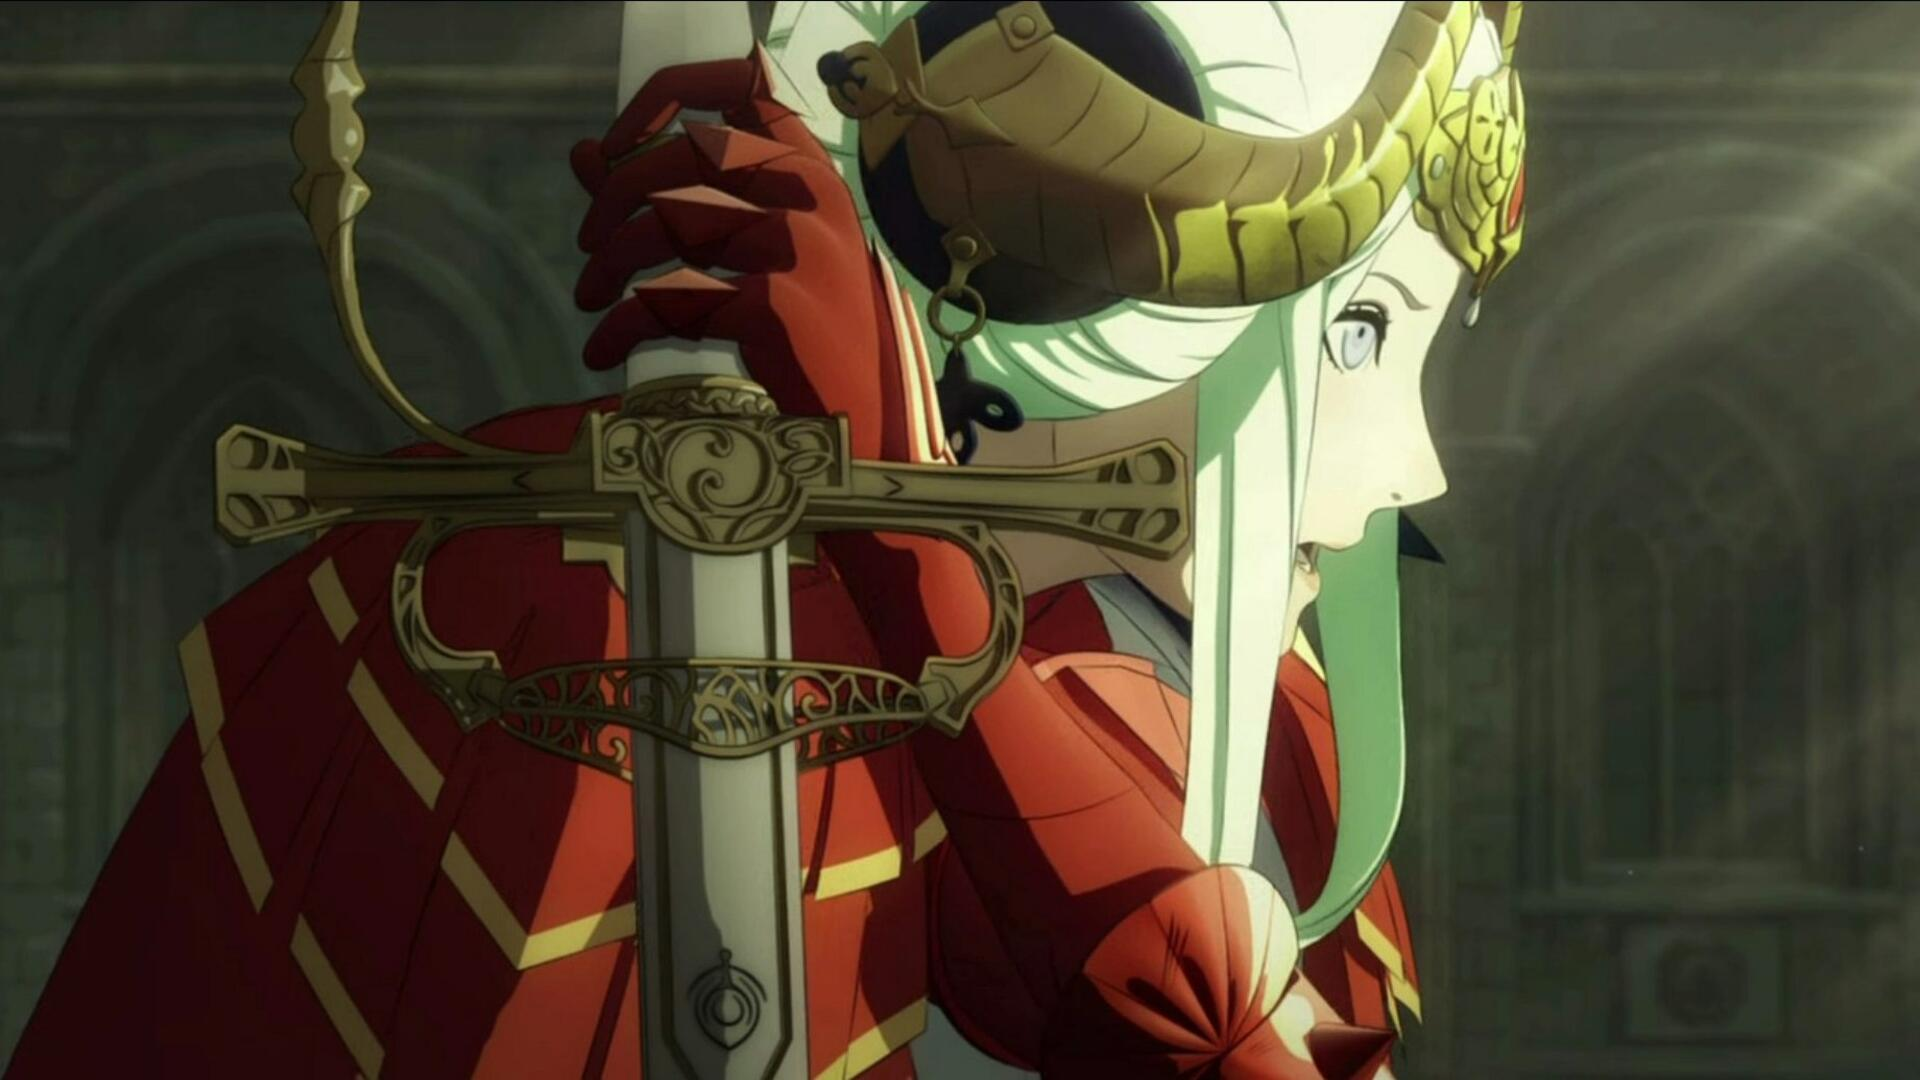 Fire Emblem Three Houses Edelgard - The Fourth Edelgard Route Explained